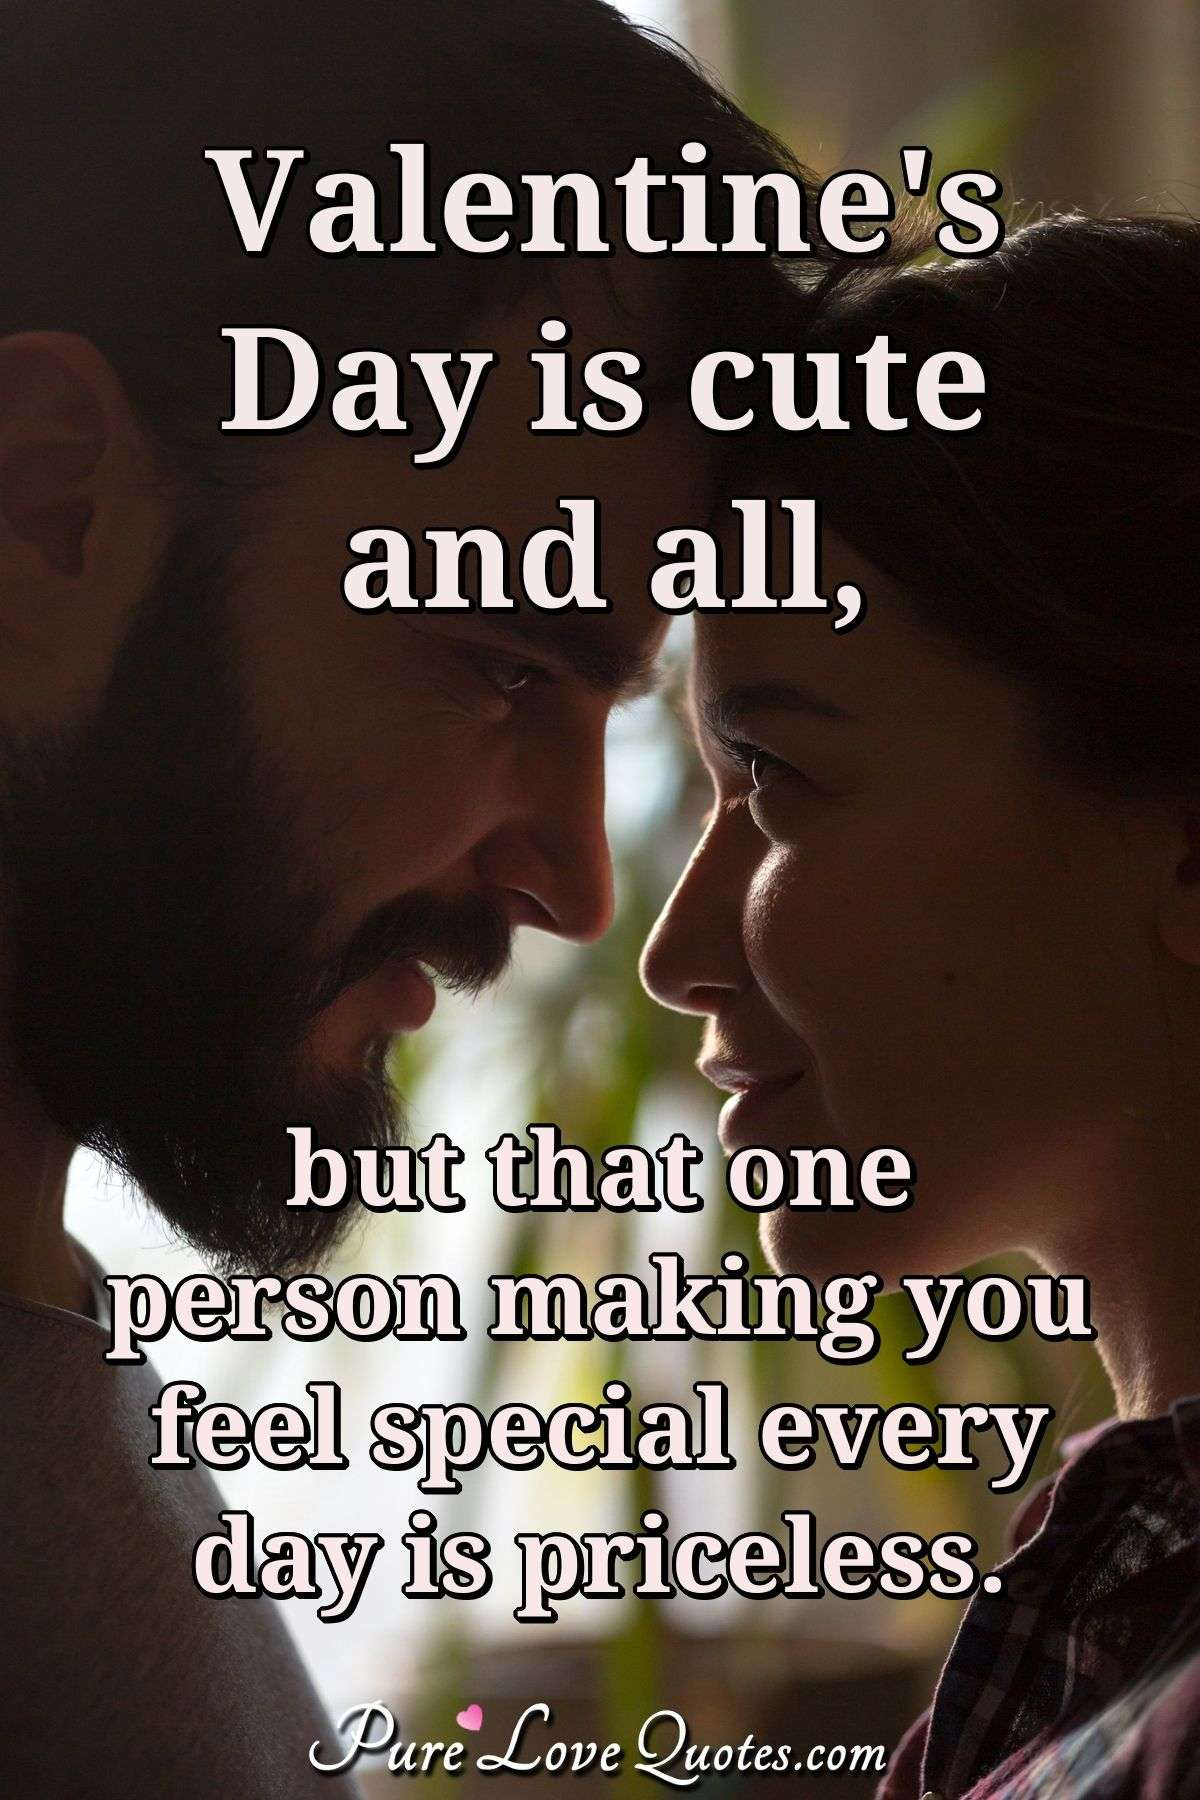 Valentine's day is cute and all, but that one person making you feel special every day is priceless. - Anonymous